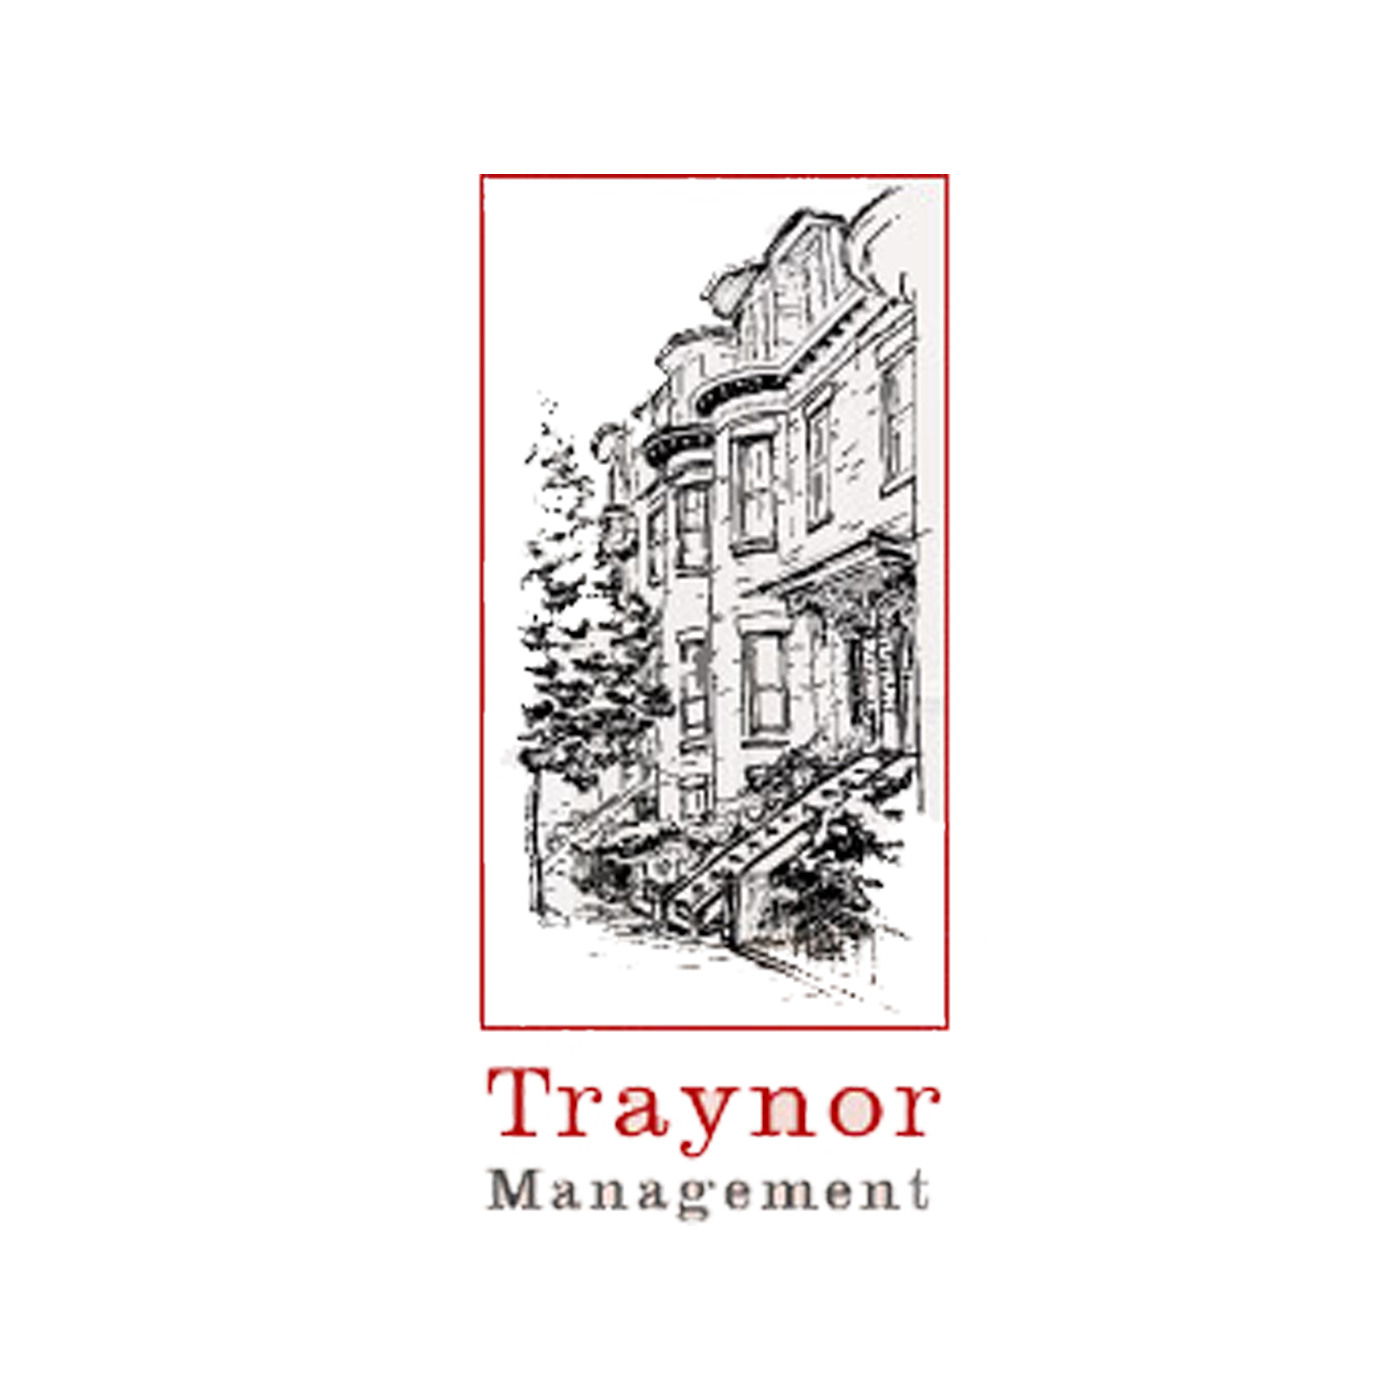 Traynor management logo